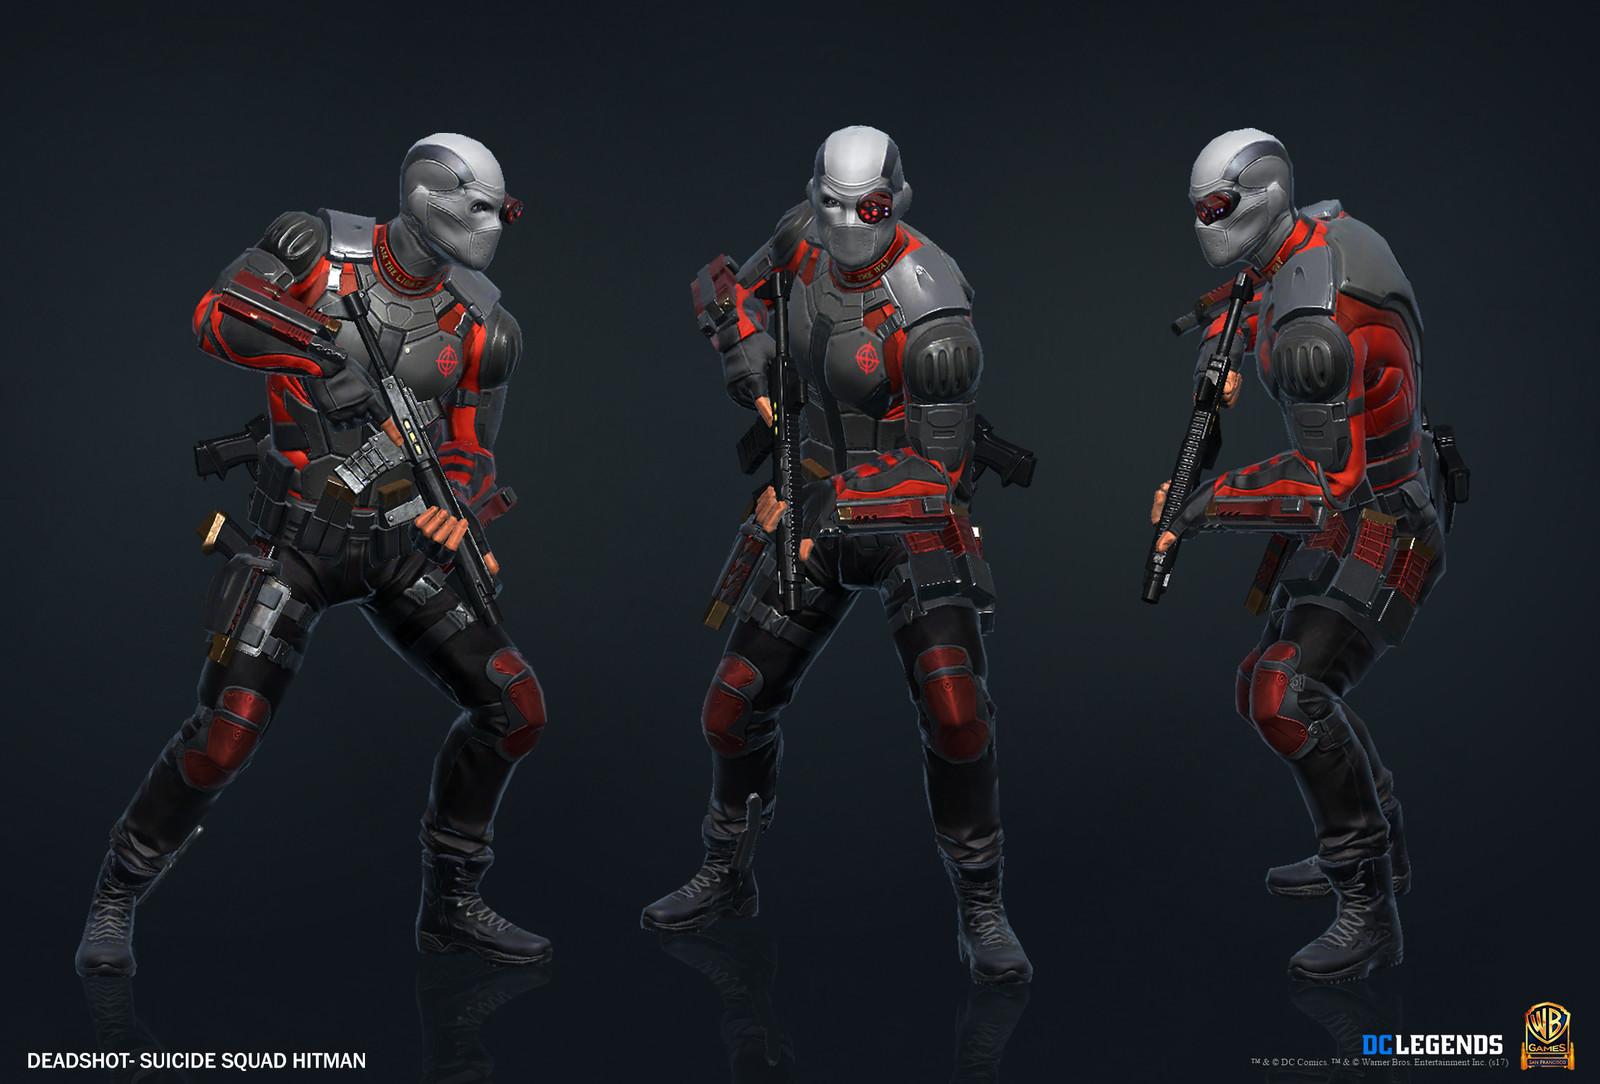 Deadshot Suicide Squad Heroic High Poly, Low Poly Textures/Material work done by me. Additional Texture/Material pass done by Rachelle Danielle.